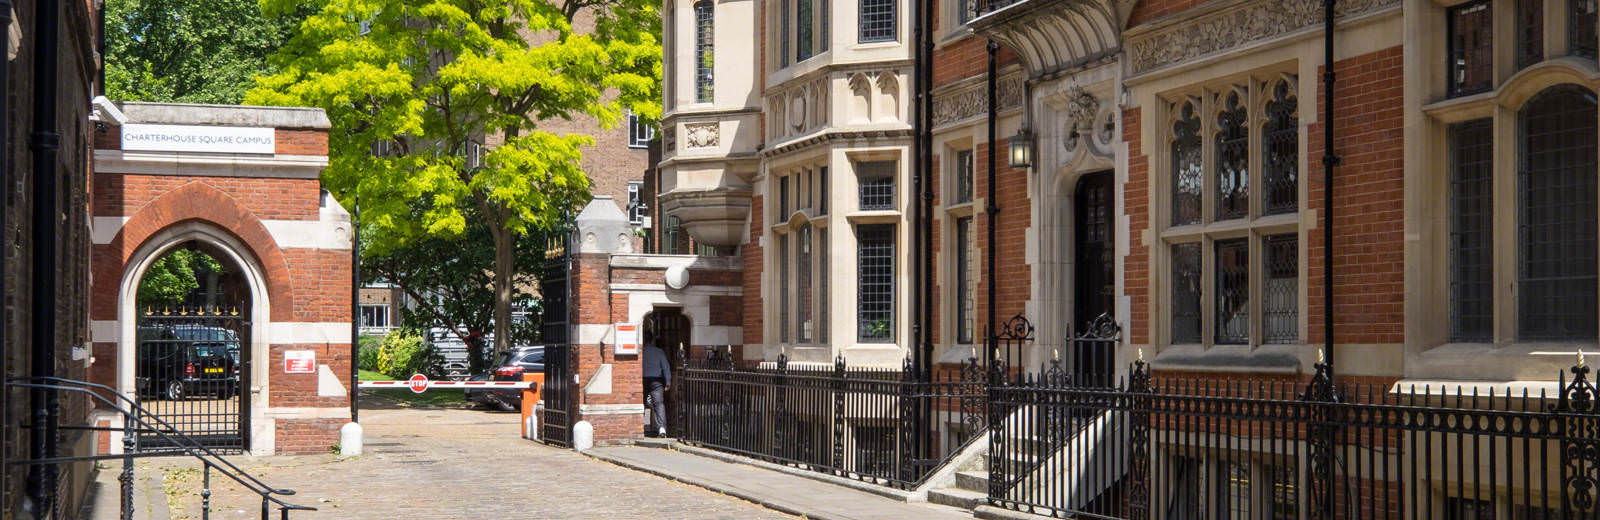 Queen Mary University Of London Charterhouse Square